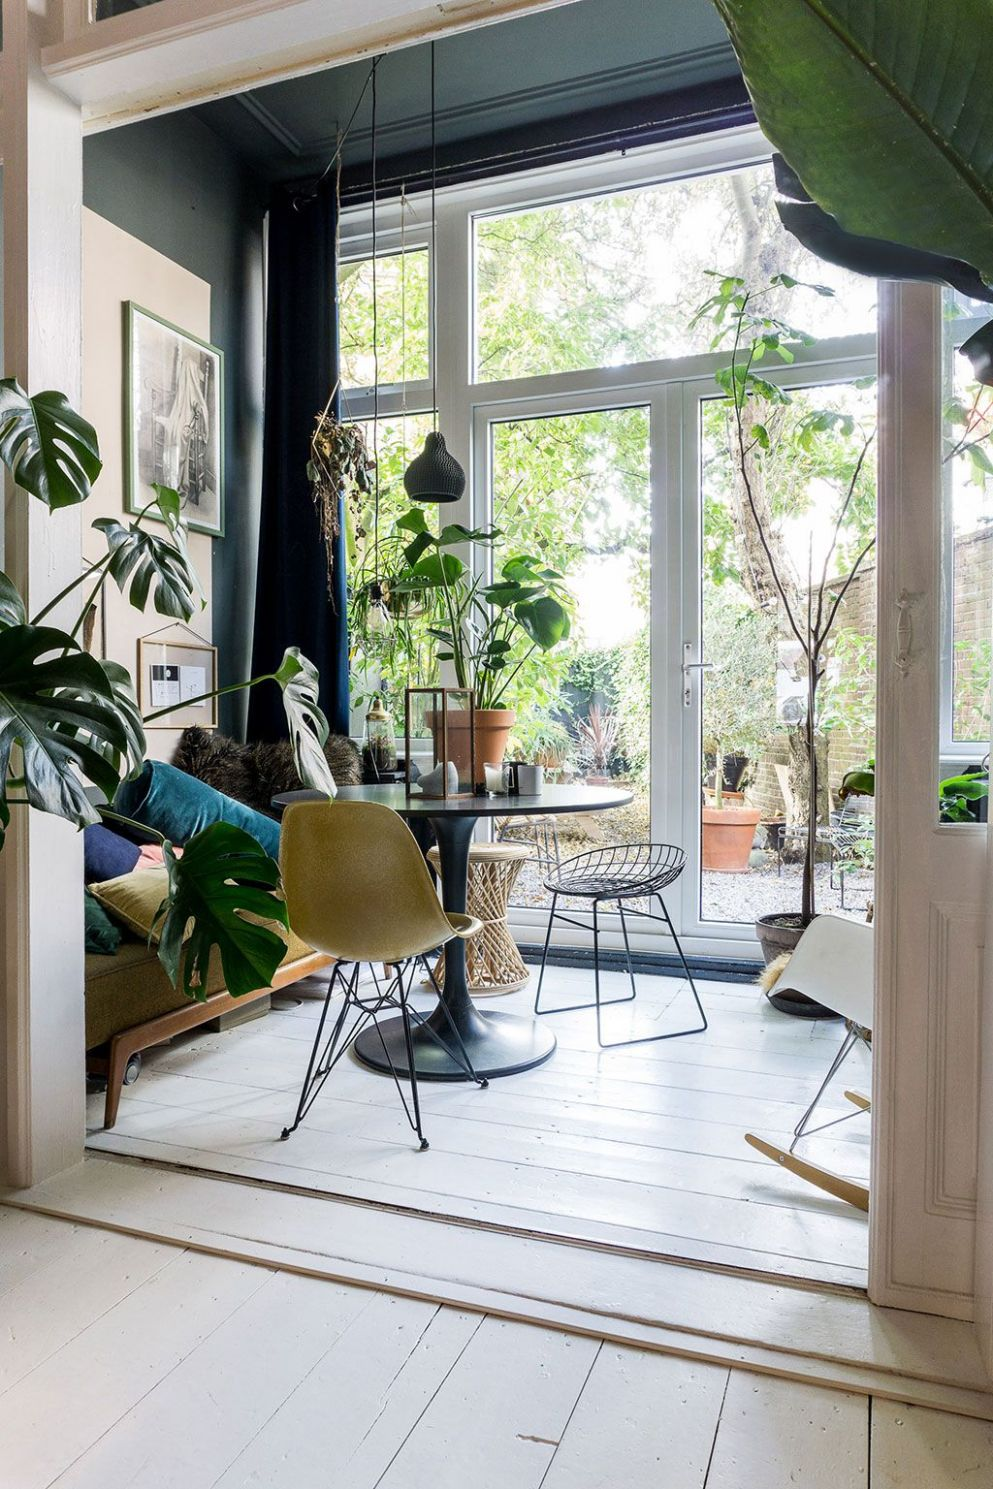 10 Sunroom Decor Ideas to Brighten Your Space - sunroom ideas for plants